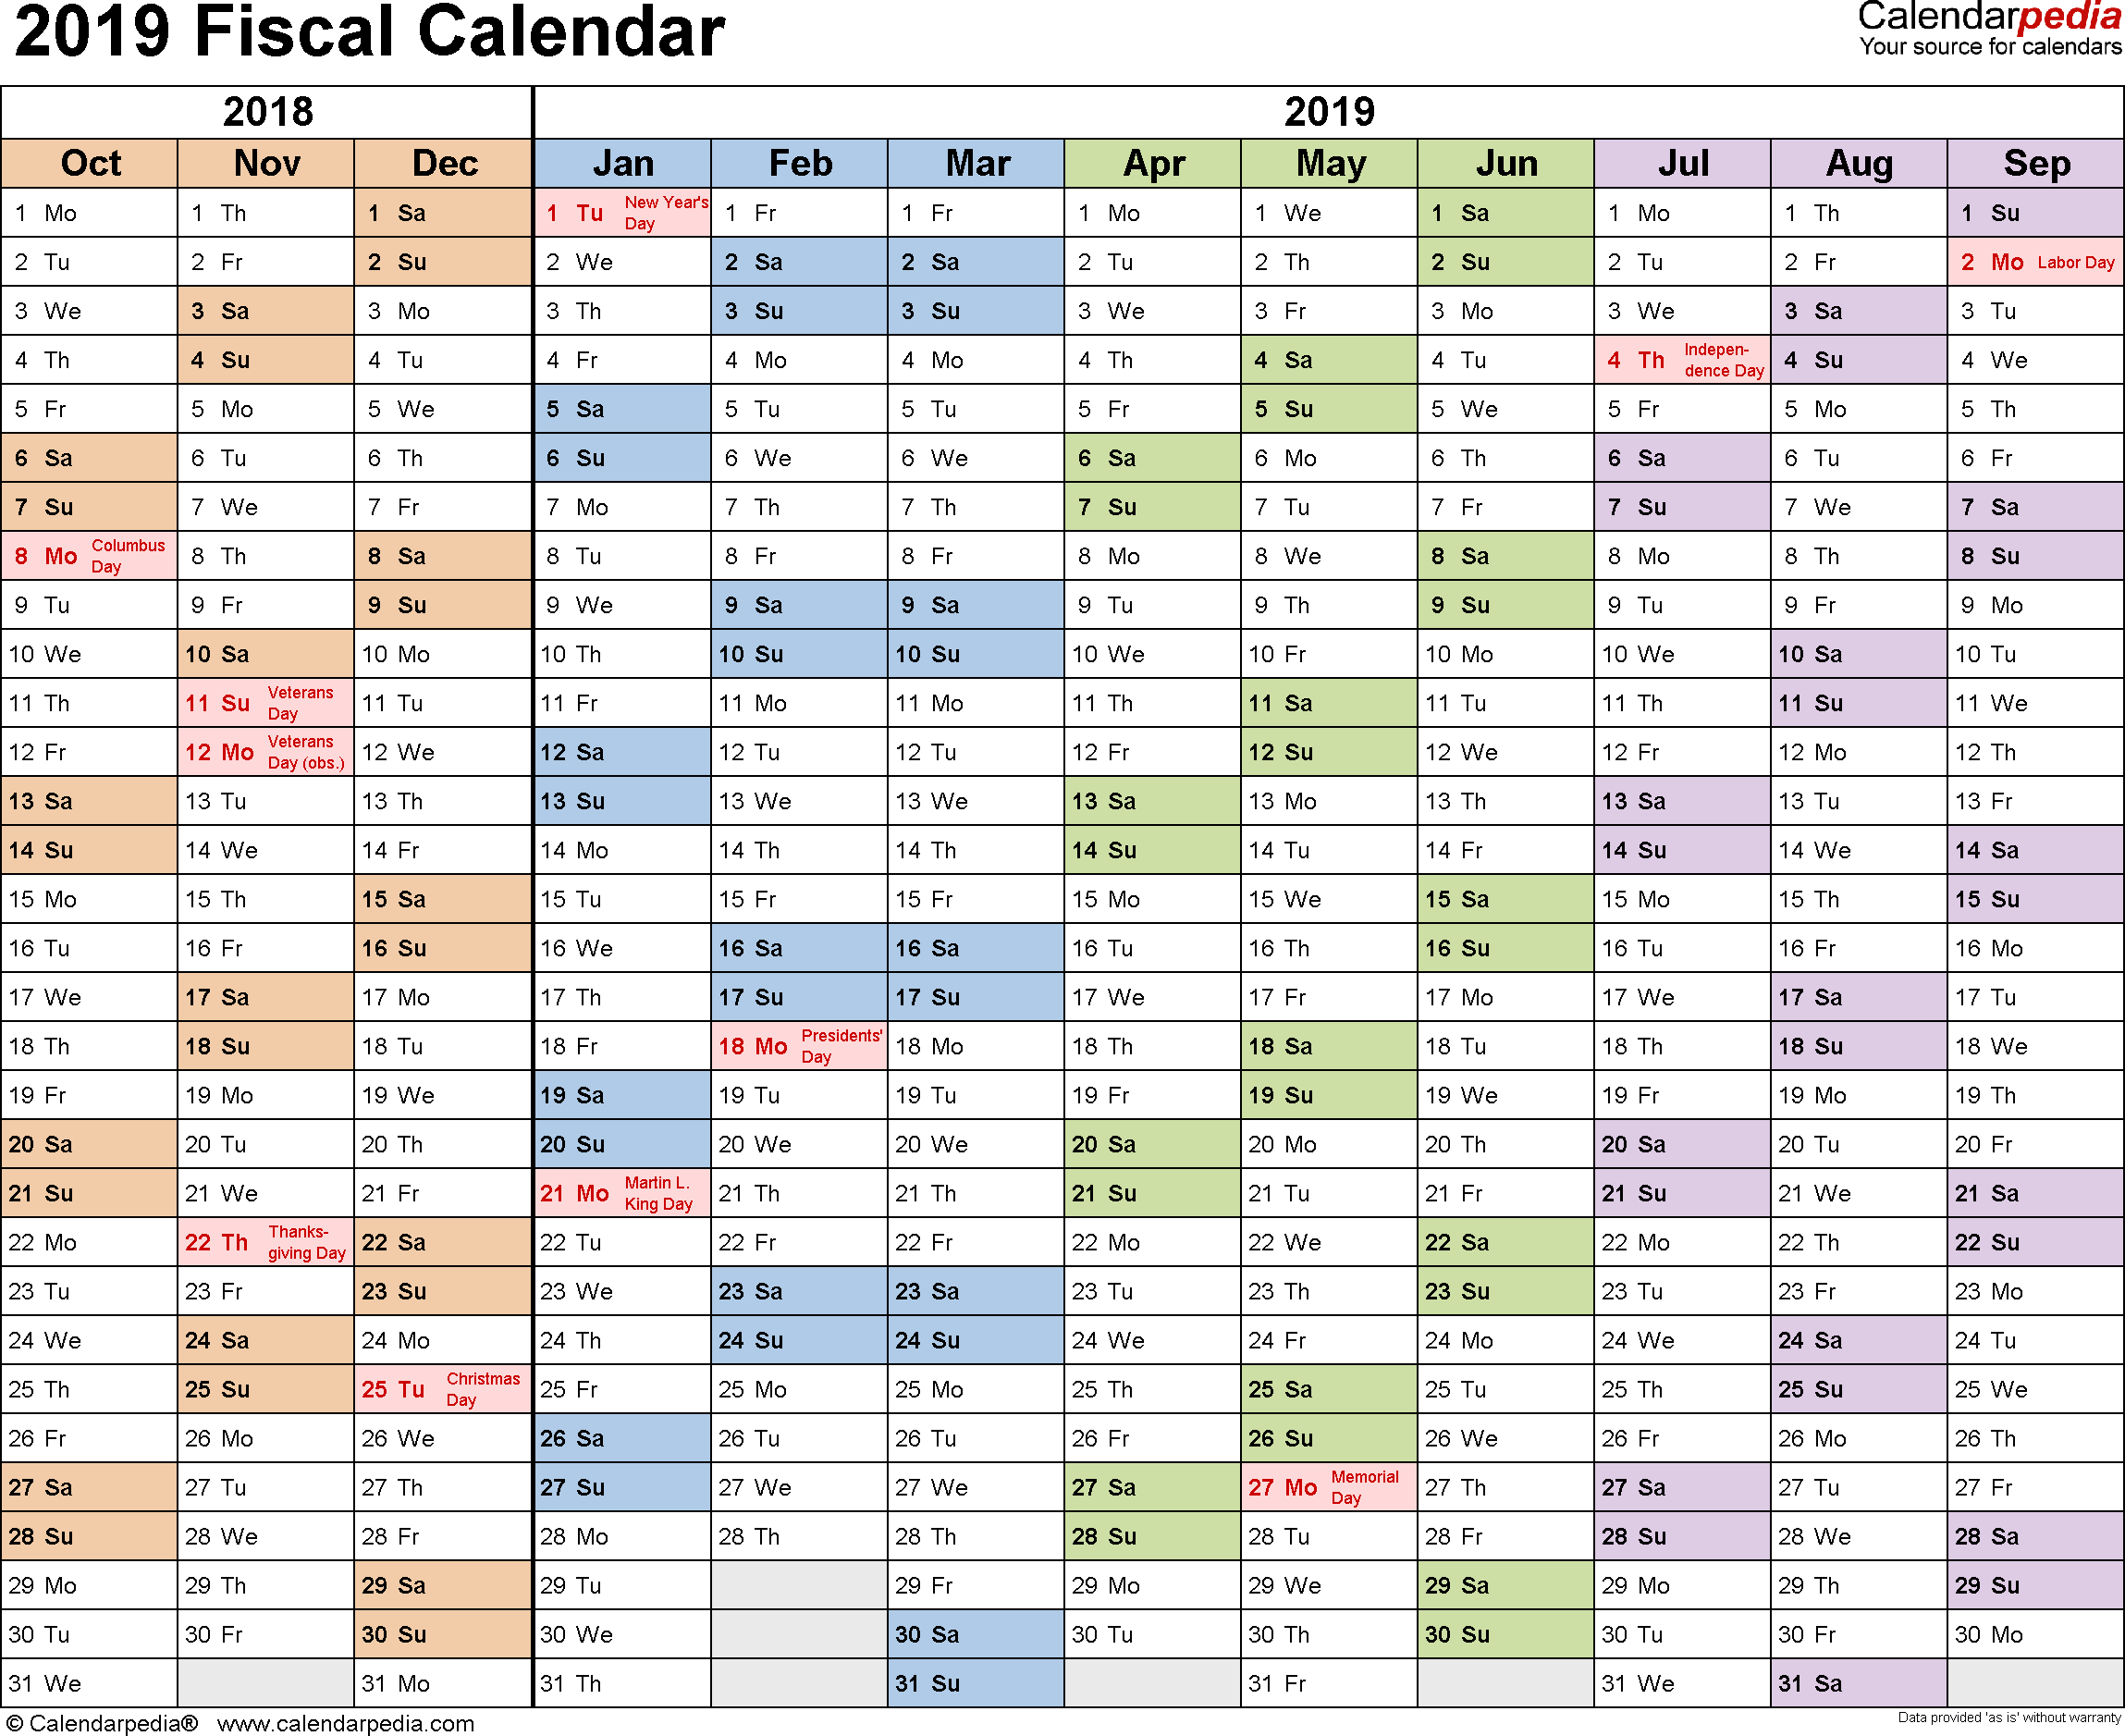 Calendar For Year 2019 Ireland With Fiscal Calendars As Free Printable PDF Templates